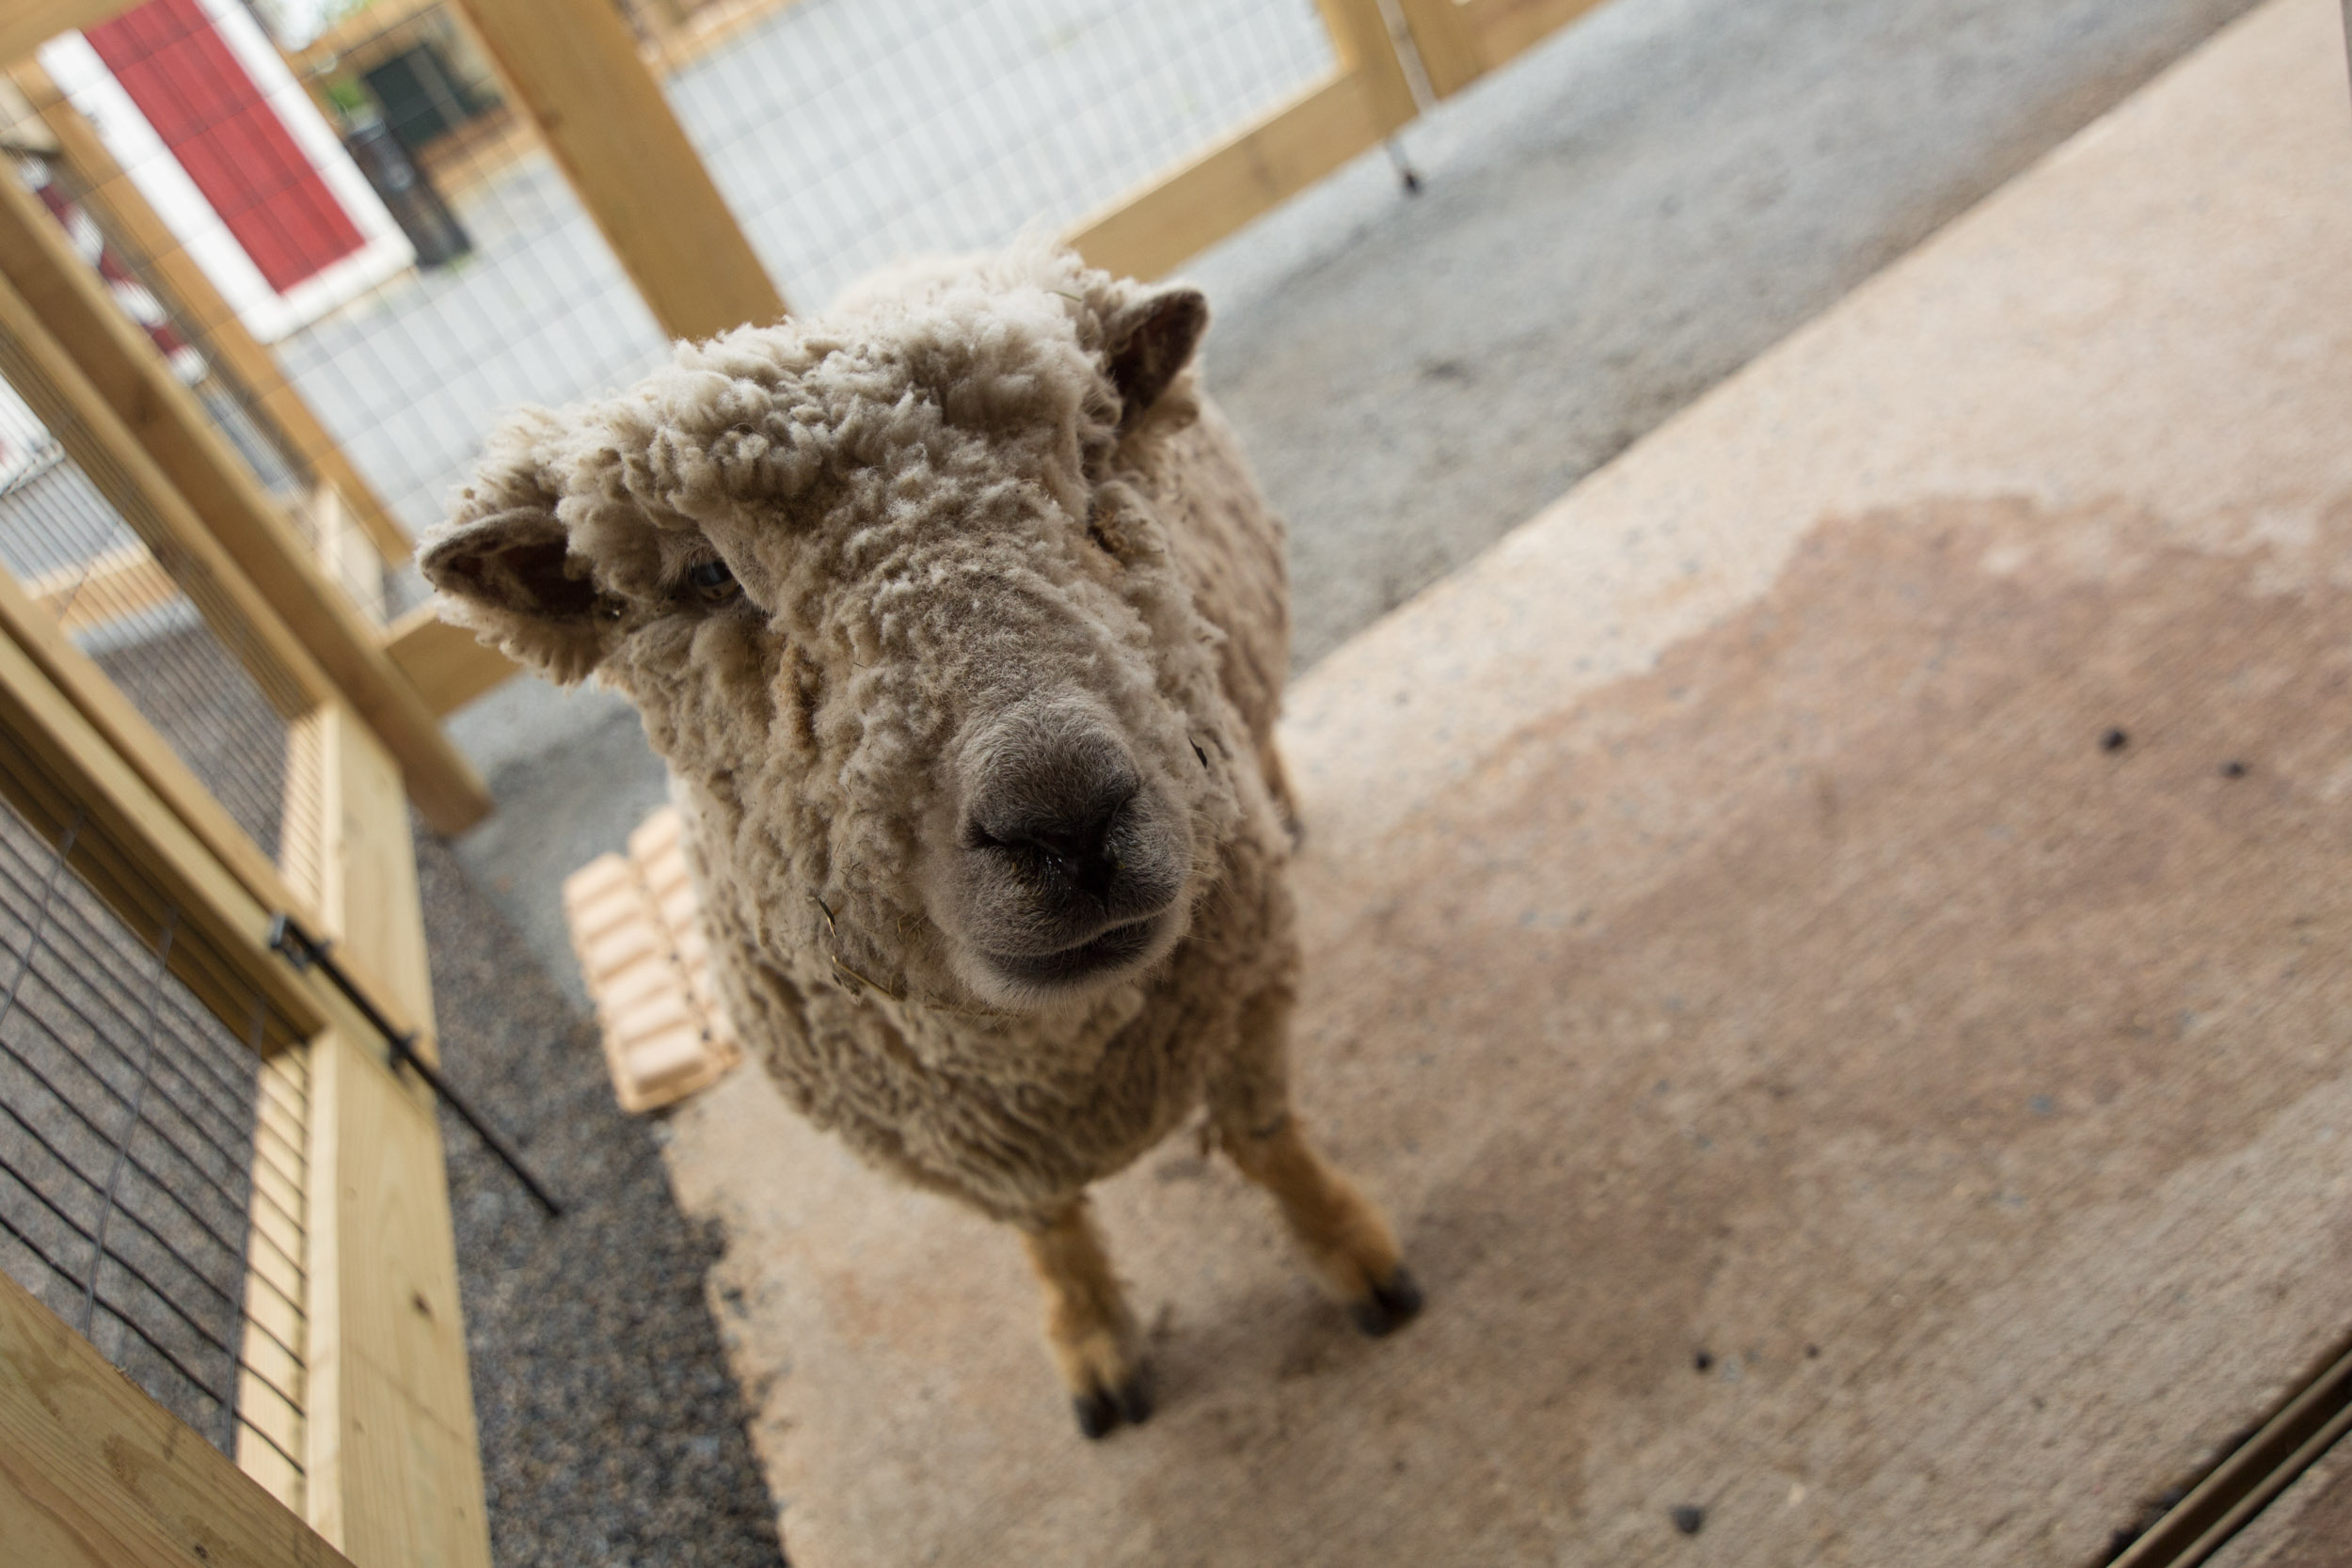 A wooly sheep sniffs the camera.